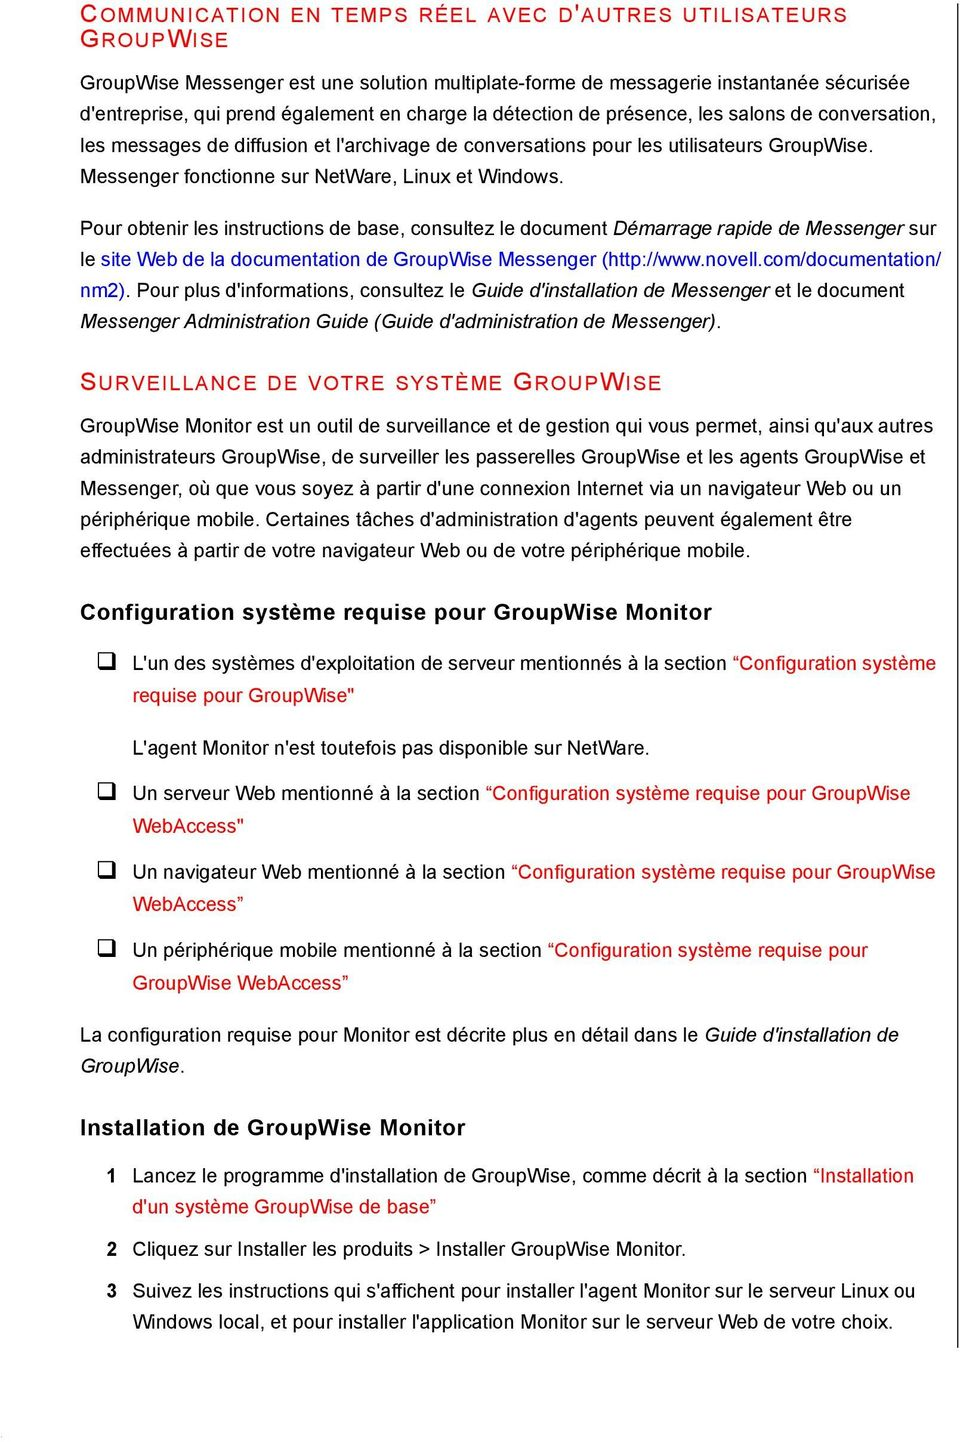 Pour obtenir les instructions de base, consultez le document Démarrage rapide de Messenger sur le site Web de la documentation de GroupWise Messenger (http://www.novell.com/documentation/ nm2).